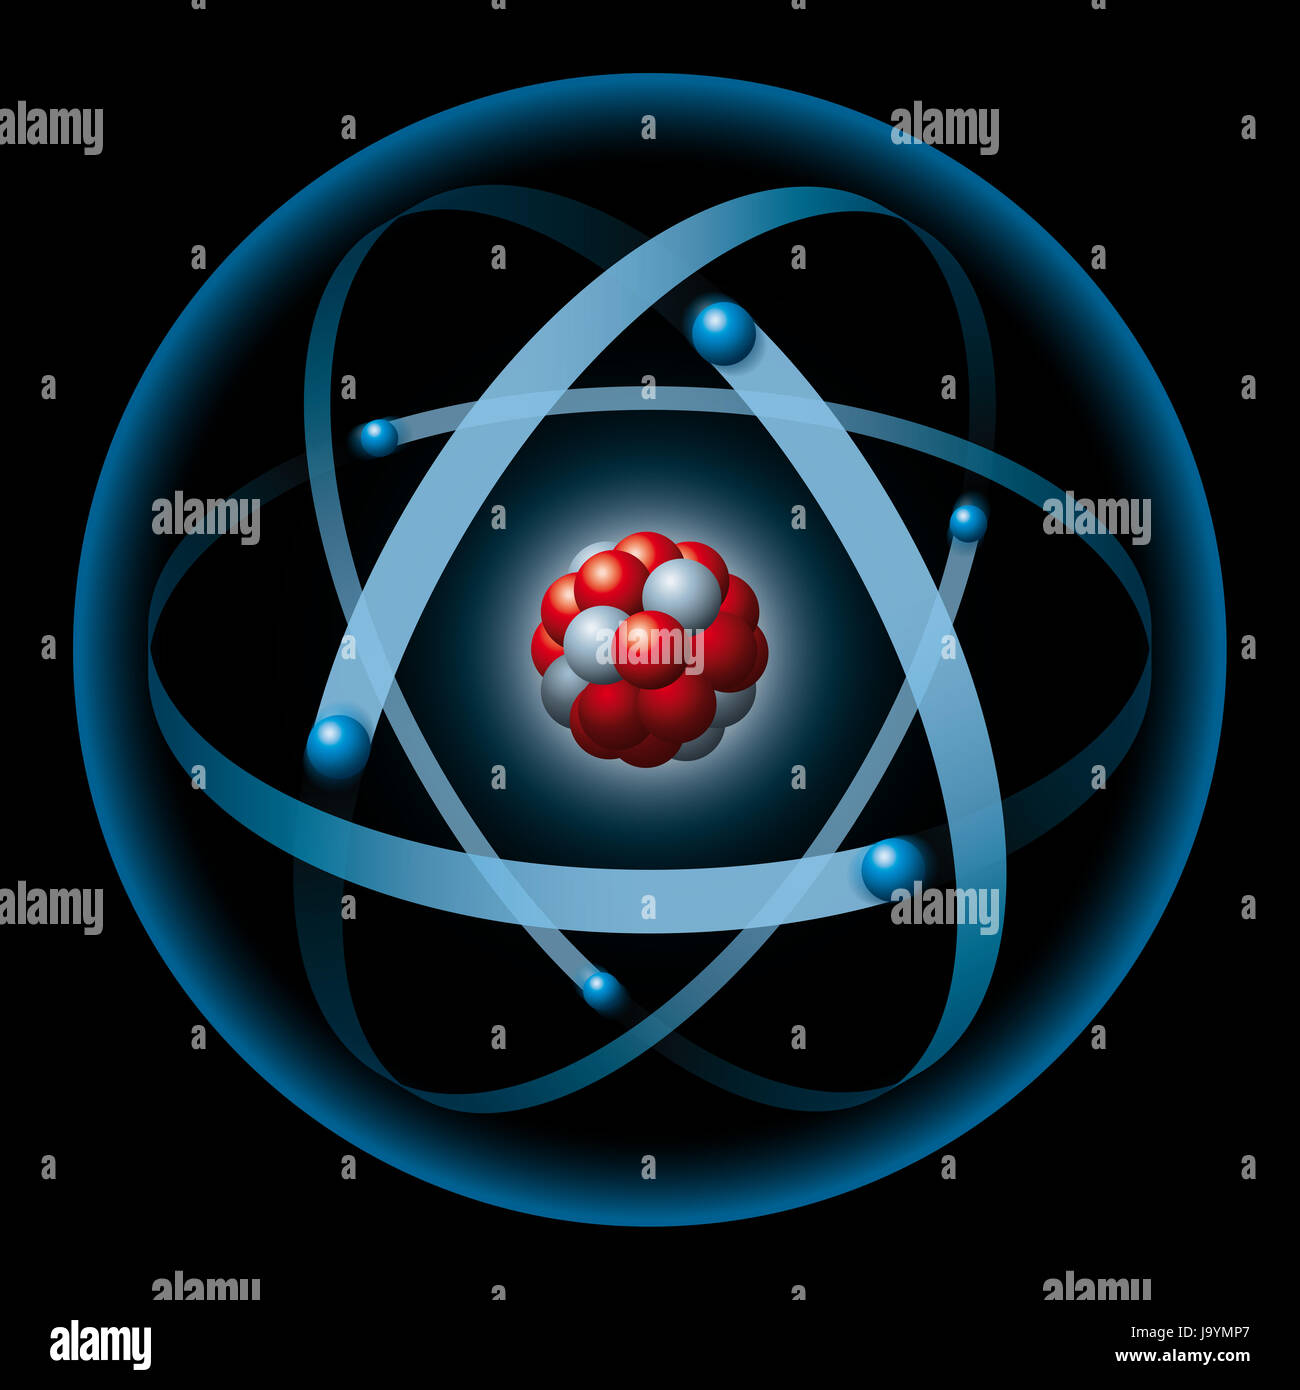 Nuclear Envelope Stock Photos Amp Nuclear Envelope Stock Images